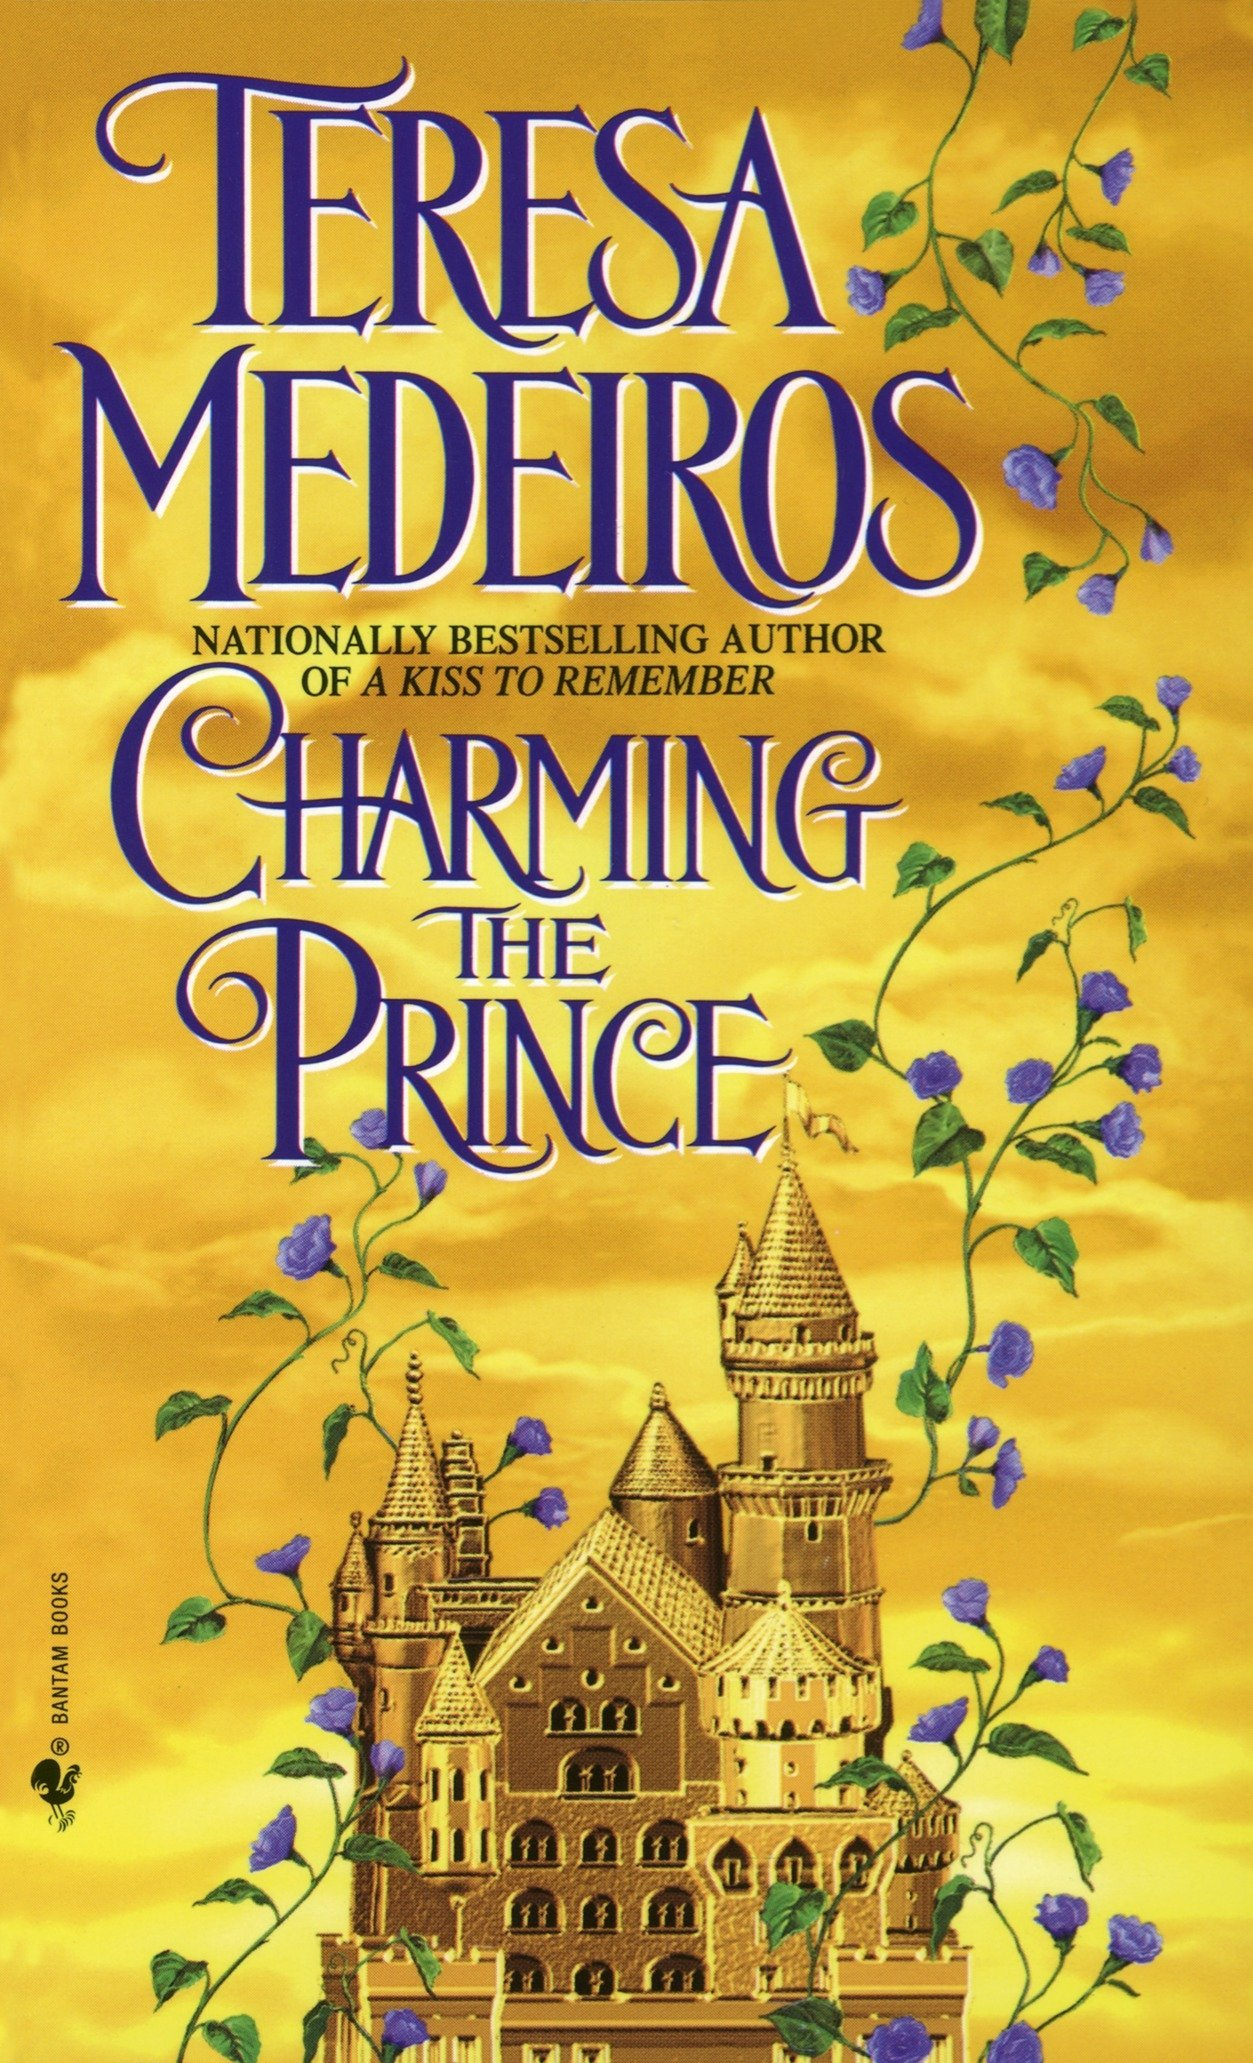 Charming the Prince (Once Upon a Time): Teresa Medeiros: 9780553575026:  Amazon.com: Books